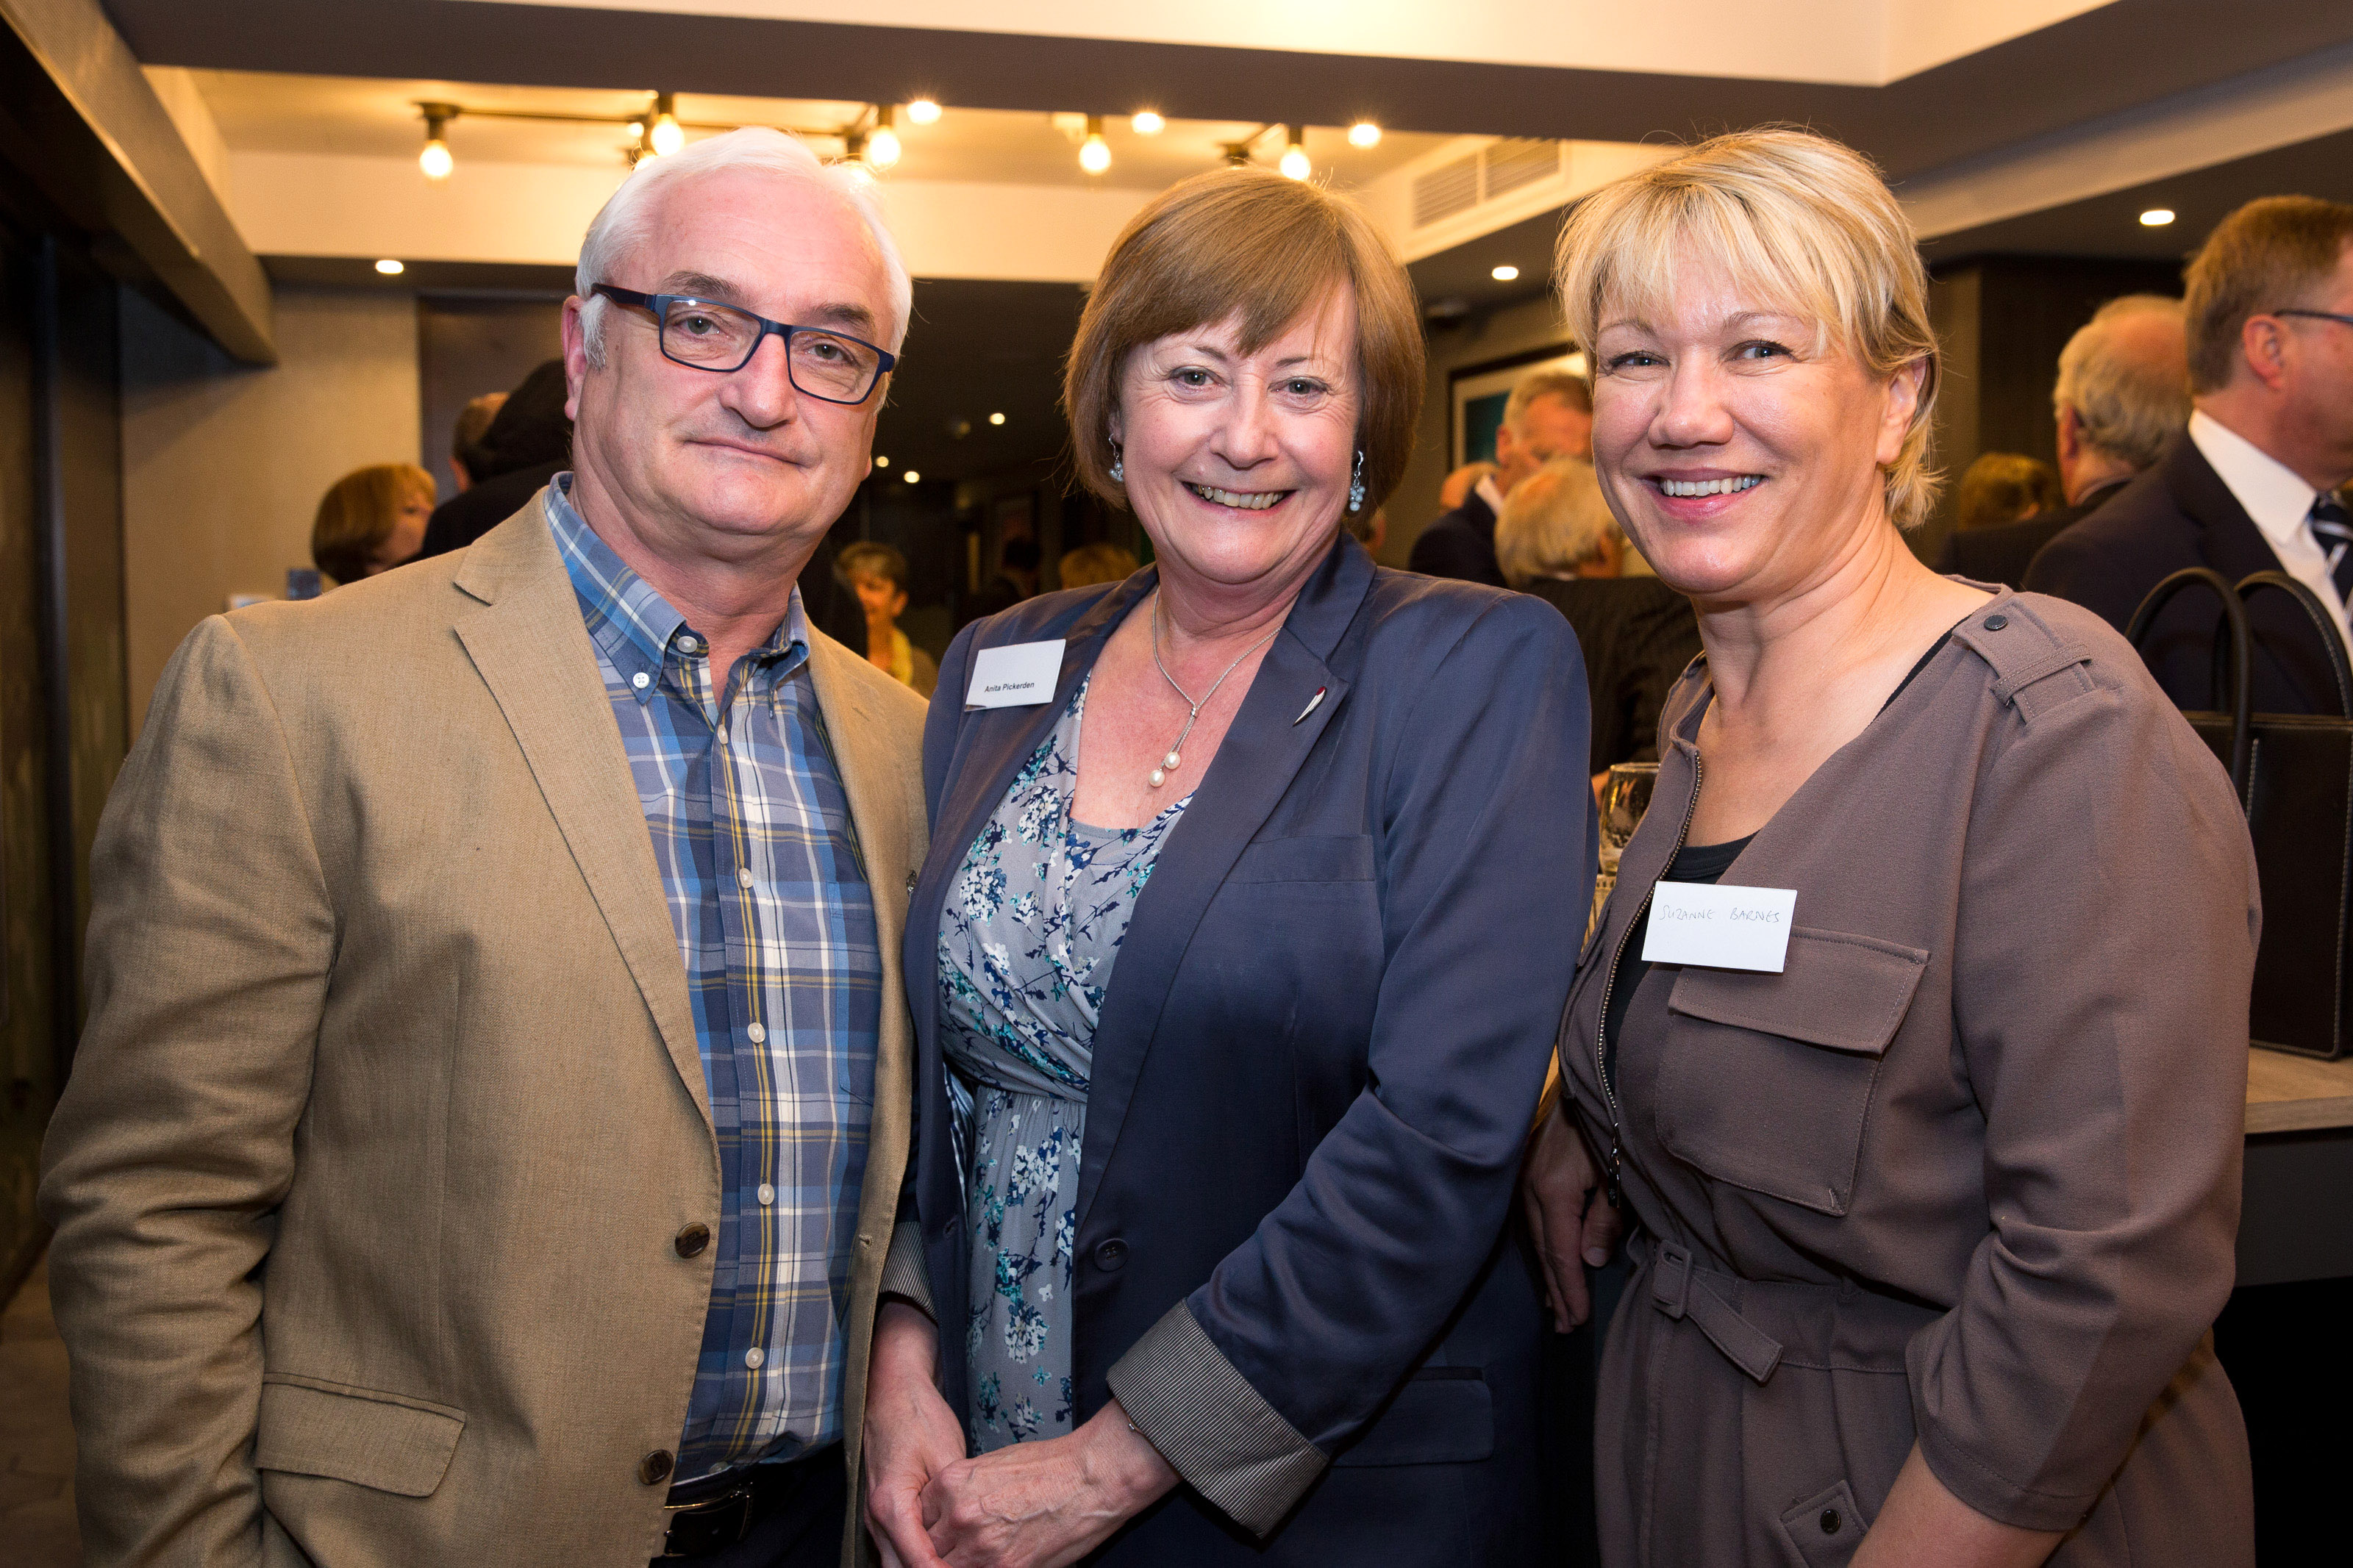 Pictured from left, Bill Gough, Anita Pickerden, Suzanne Barnes.